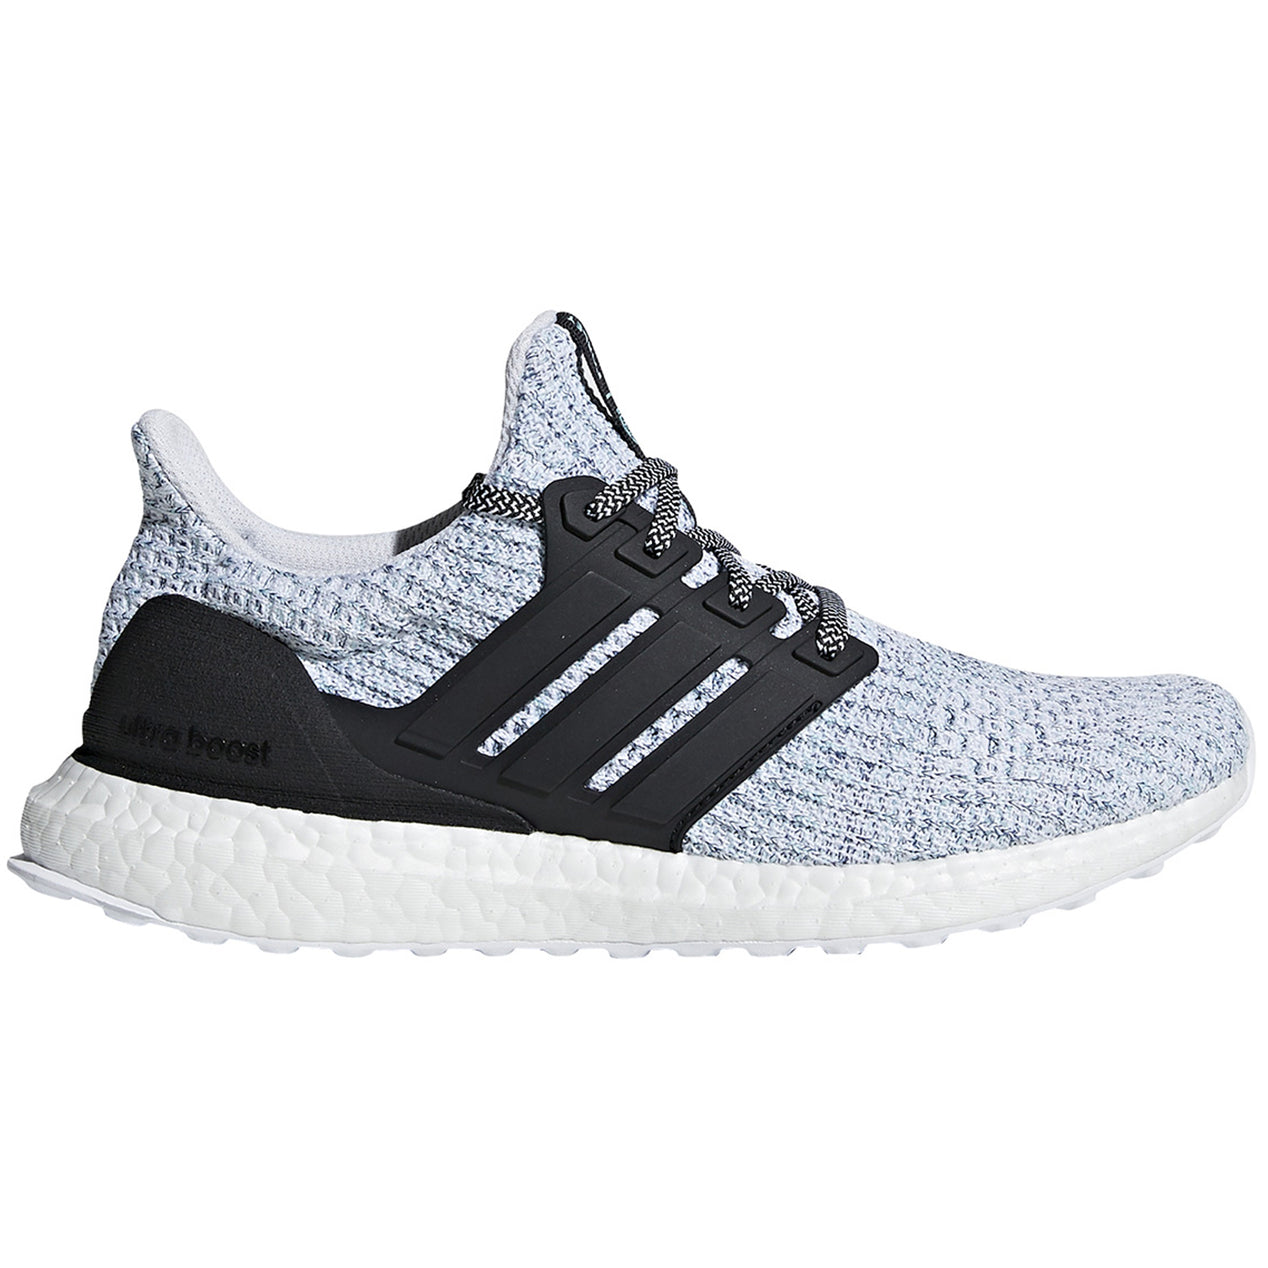 c35dfa45acc Adidas Ultraboost Parley Running Shoes - Women s